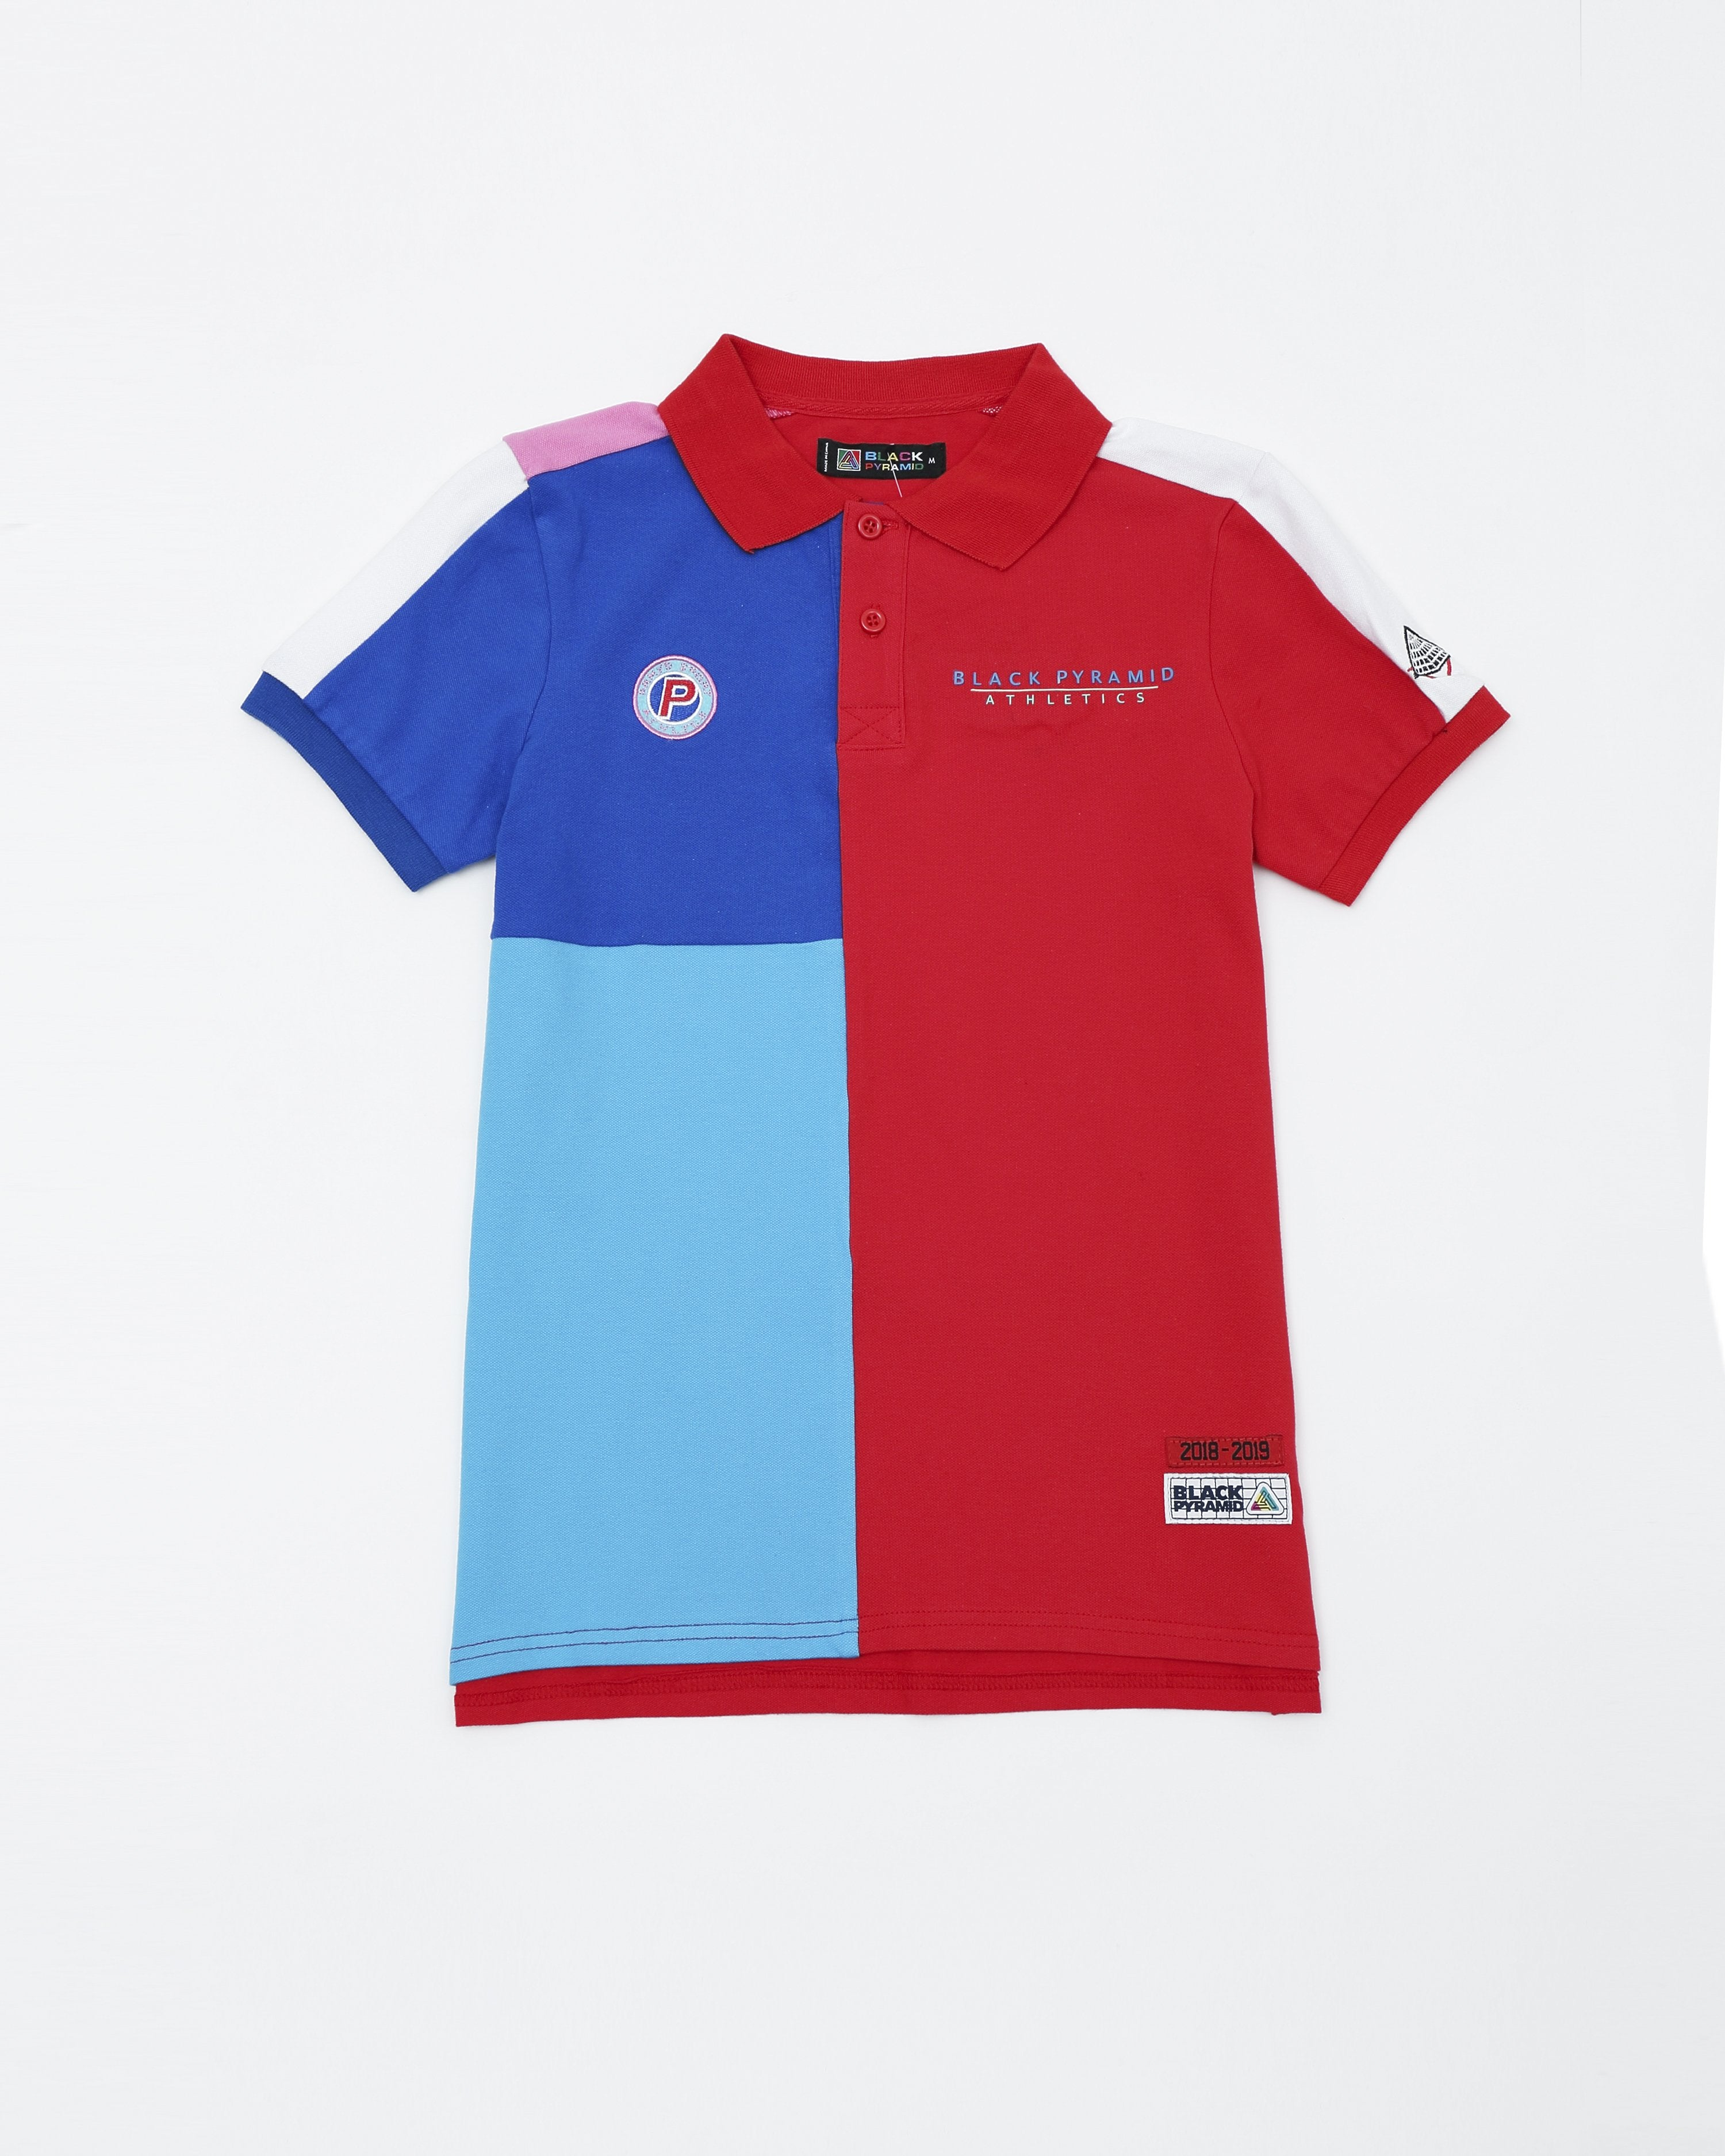 c4806c7e0 BP Athletic Colors Kids Polo - Color  Red ...